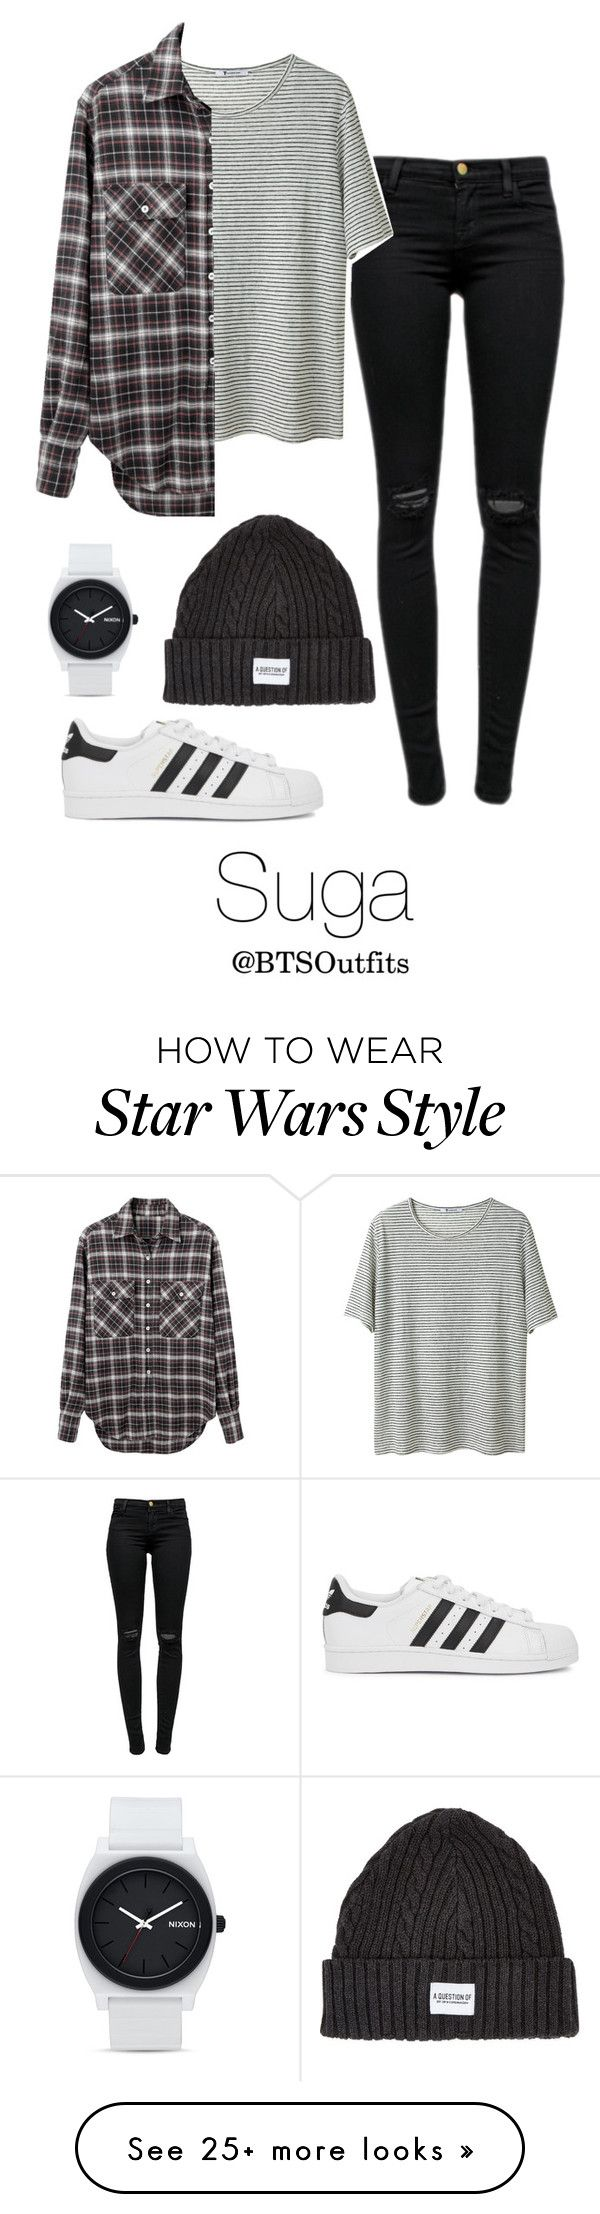 """When you First Meet Him: Suga"" by btsoutfits on Polyvore featuring J Brand, T…"